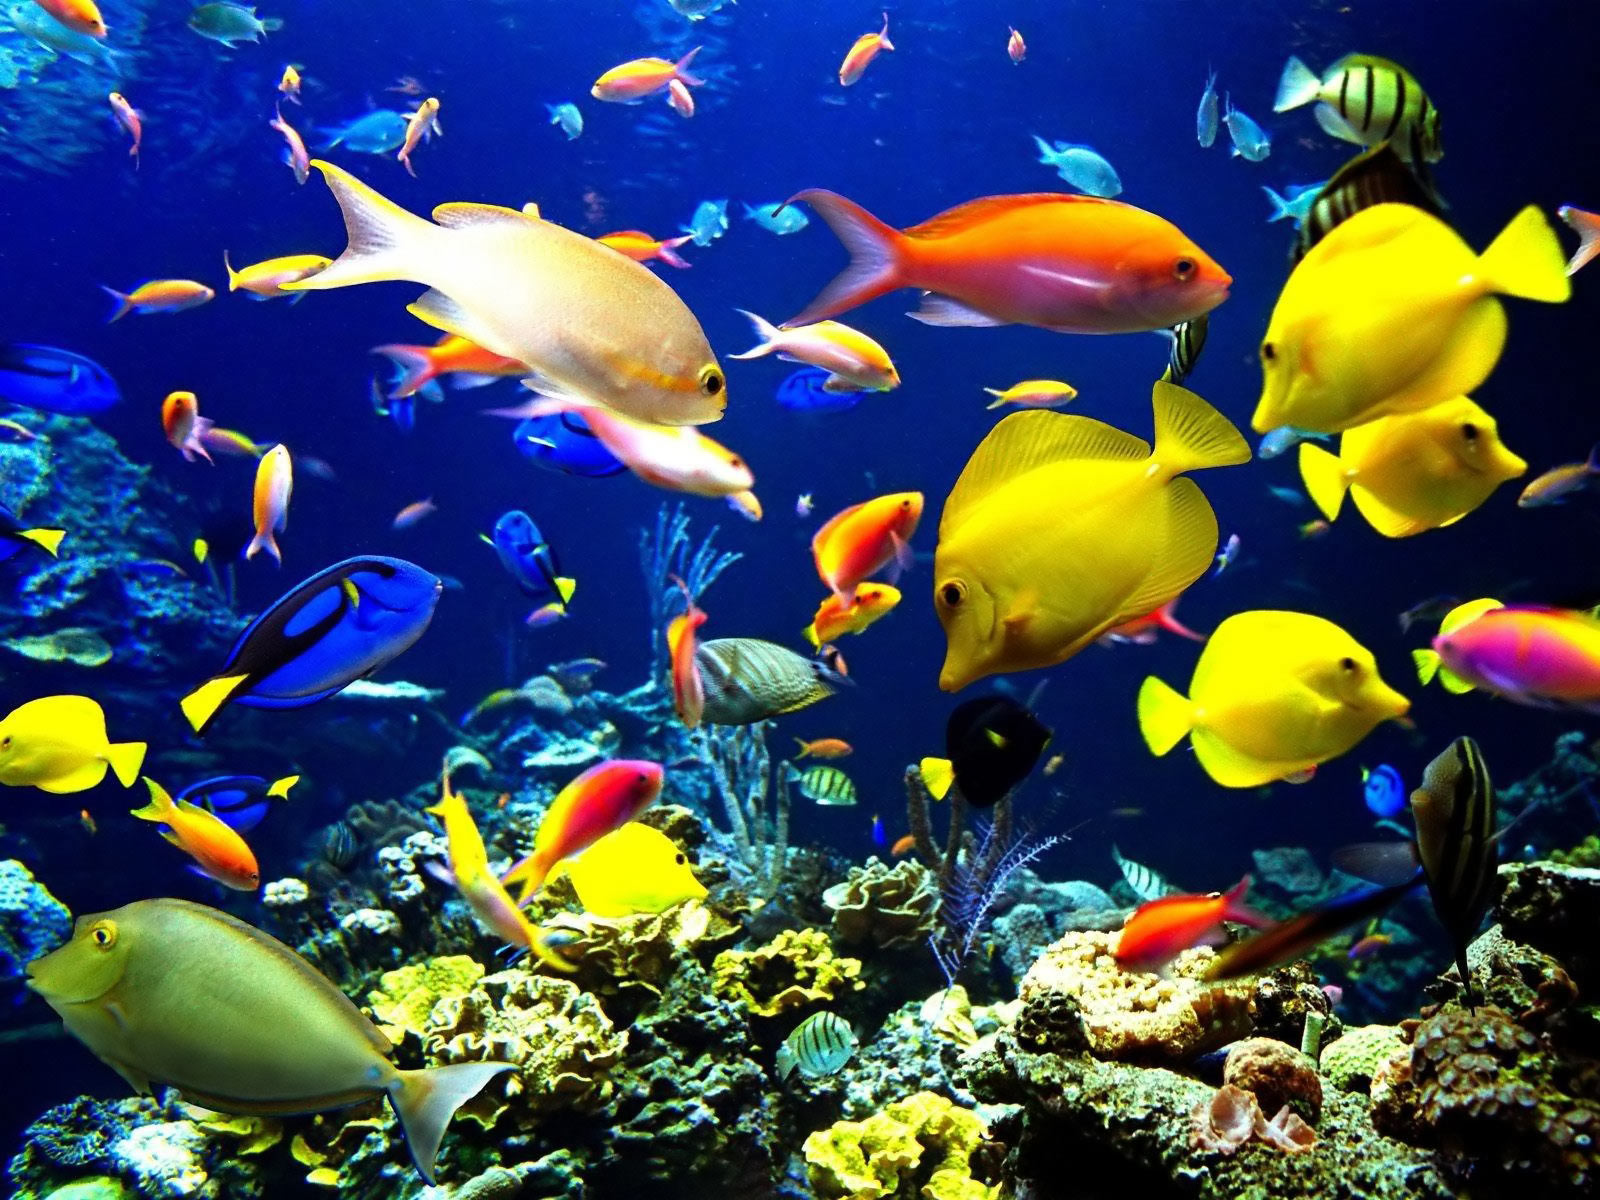 Snapshots from our journey fish tanks produce aisles for Saltwater fish online